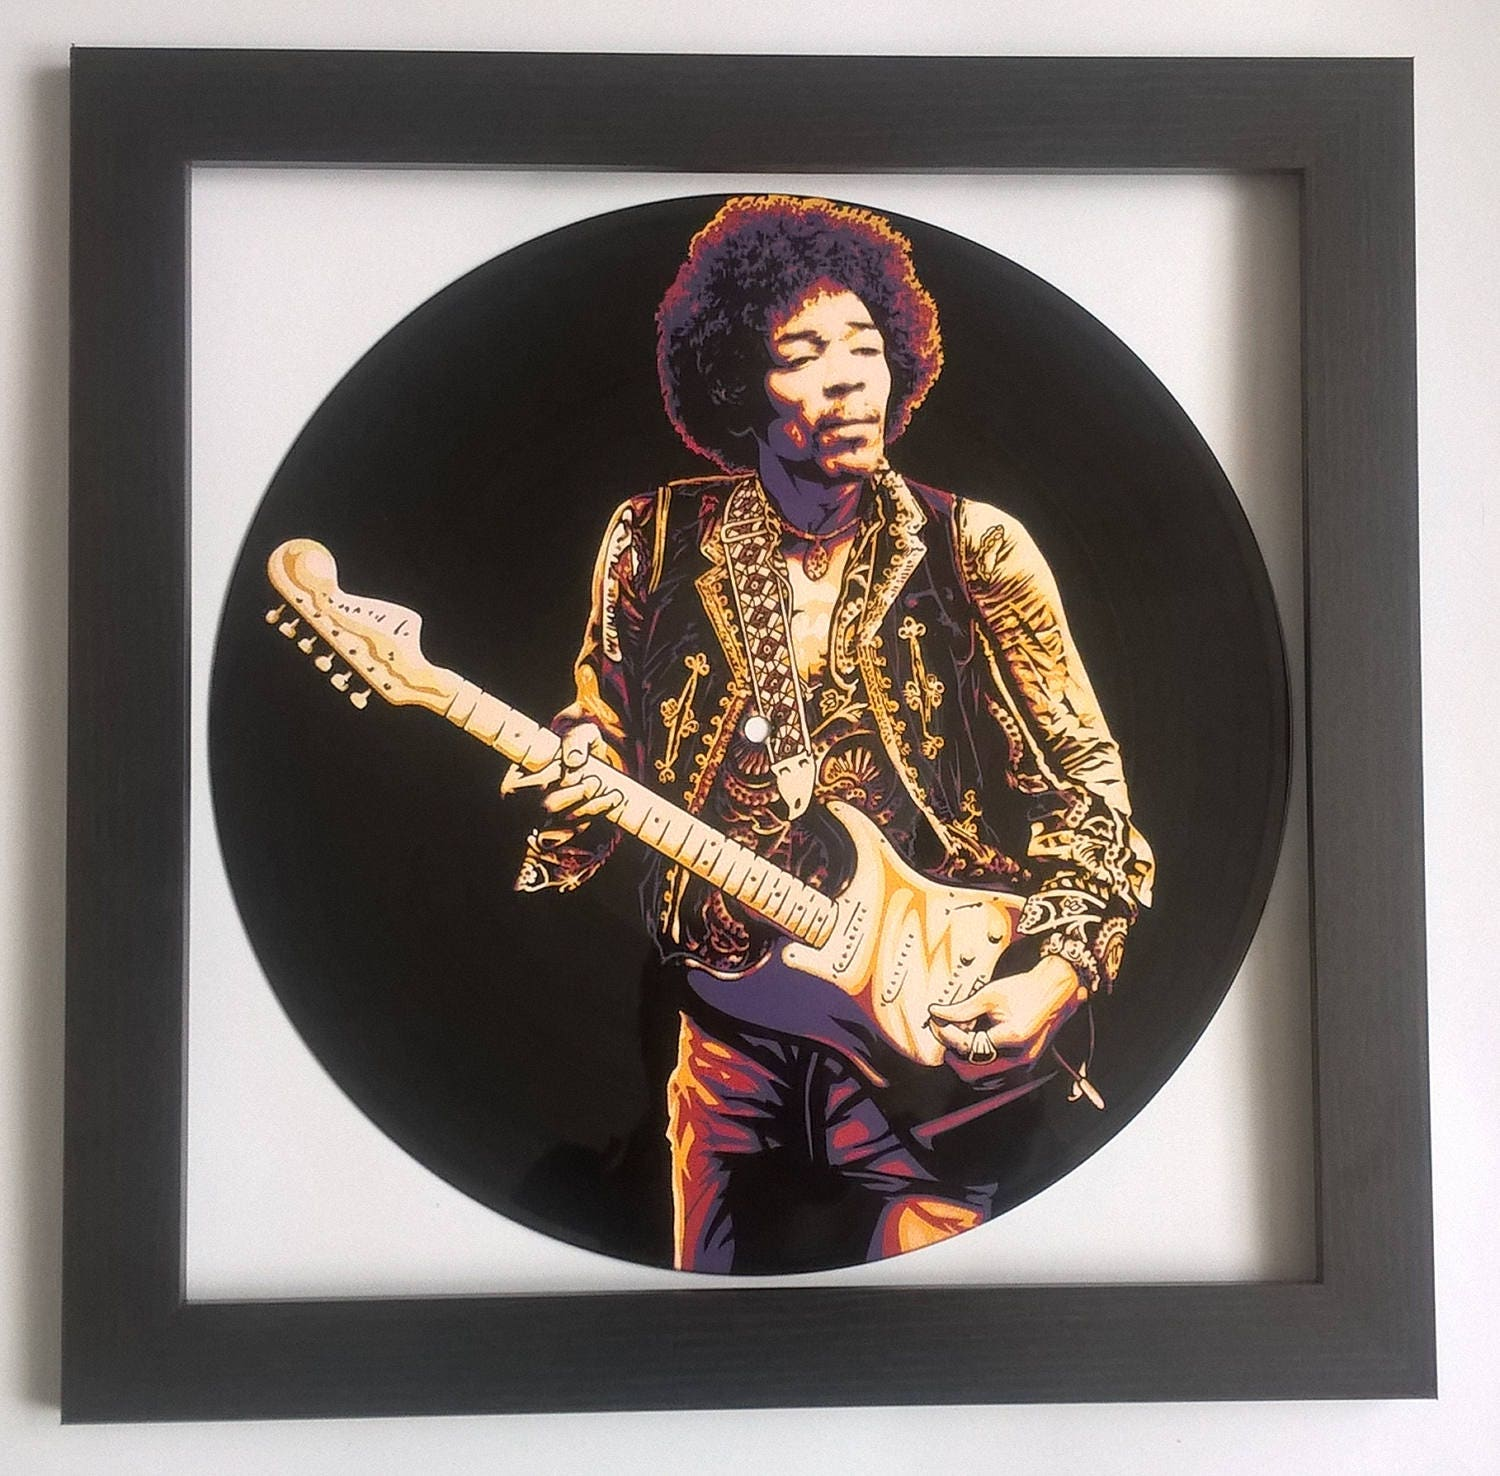 jimi hendrix painted on vinyl record framed and ready to. Black Bedroom Furniture Sets. Home Design Ideas